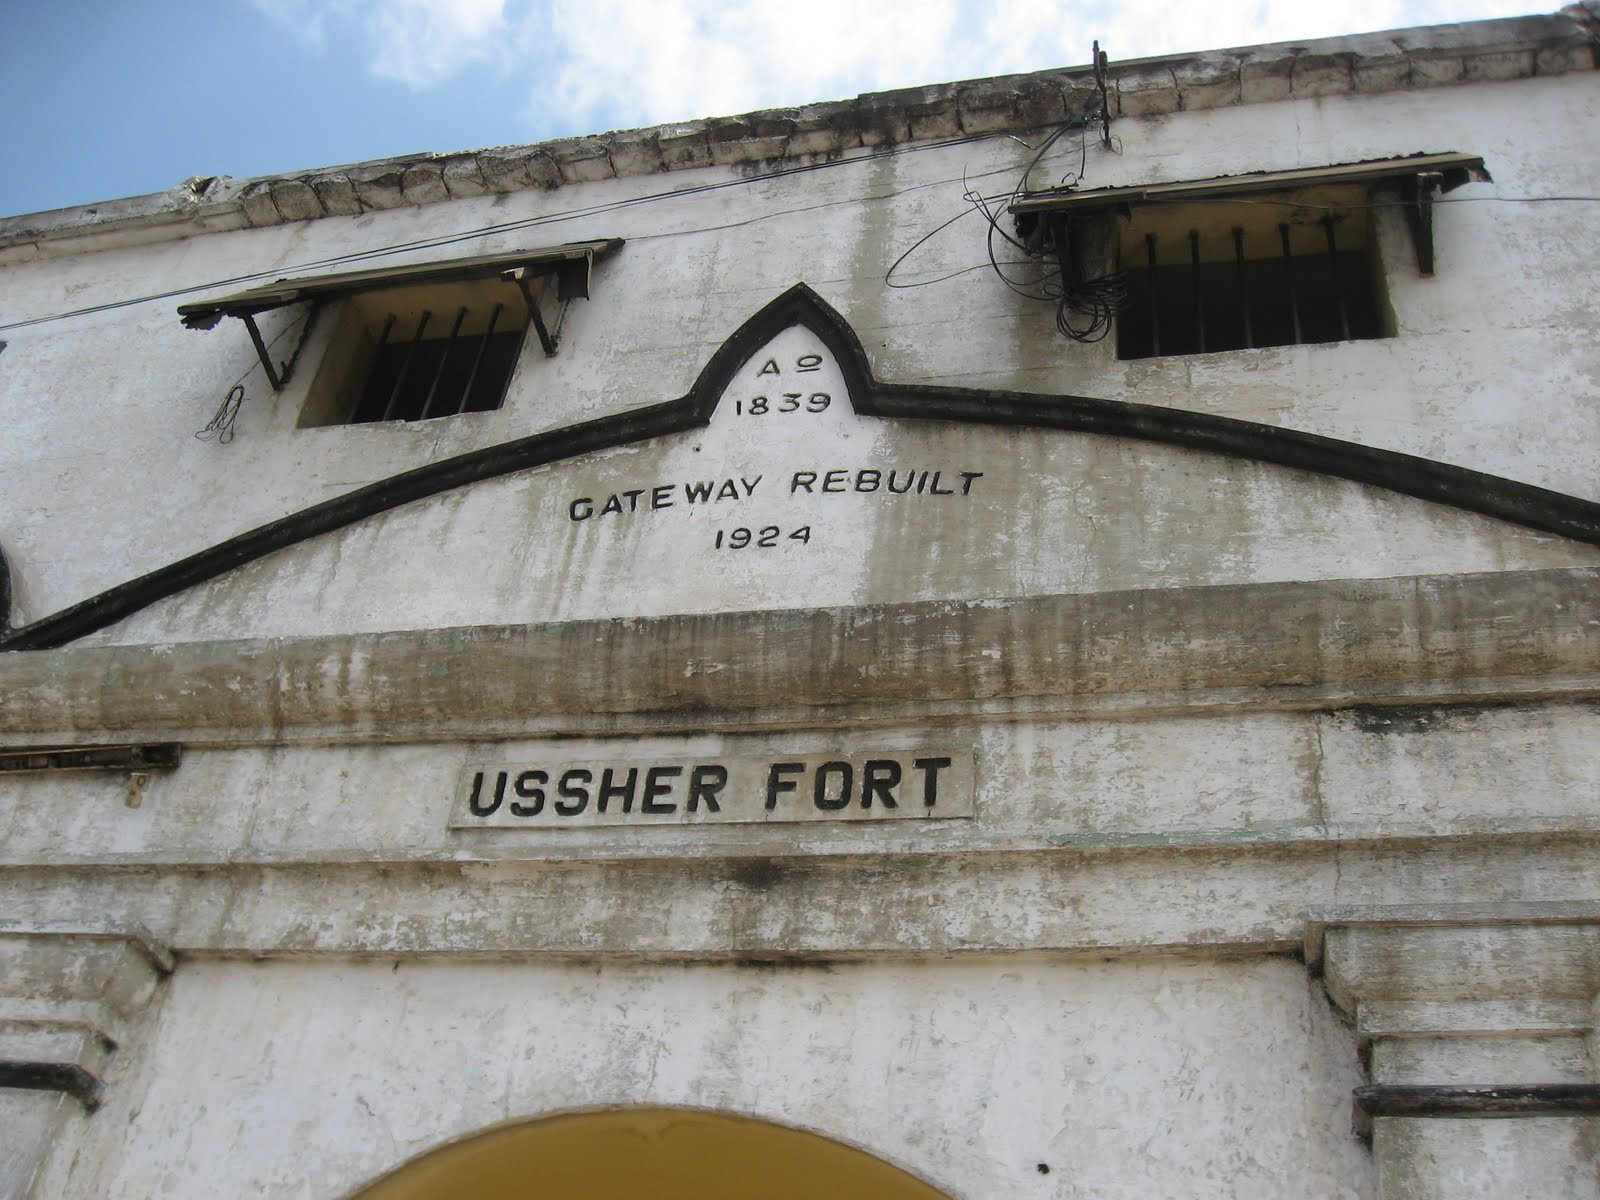 ussher-fort-u2C9N.jpg